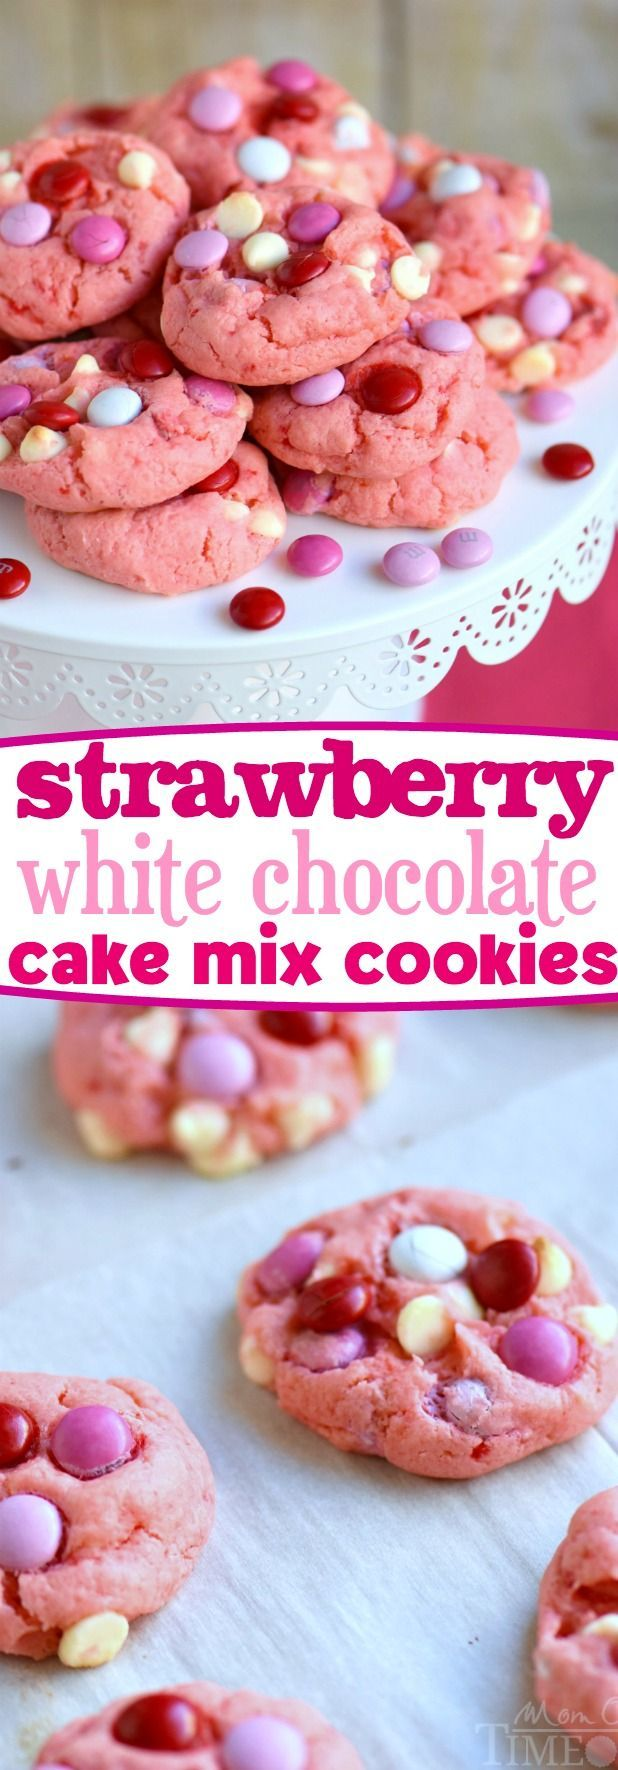 Super moist and delicious Strawberry and White Chocolate Cake Mix Cookies! This recipe uses a SECRET INGREDIENT for the moistest cookies EVER! So pretty and pink! Perfect for Valentine's Day, baby showers and more! // Mom On Timeout